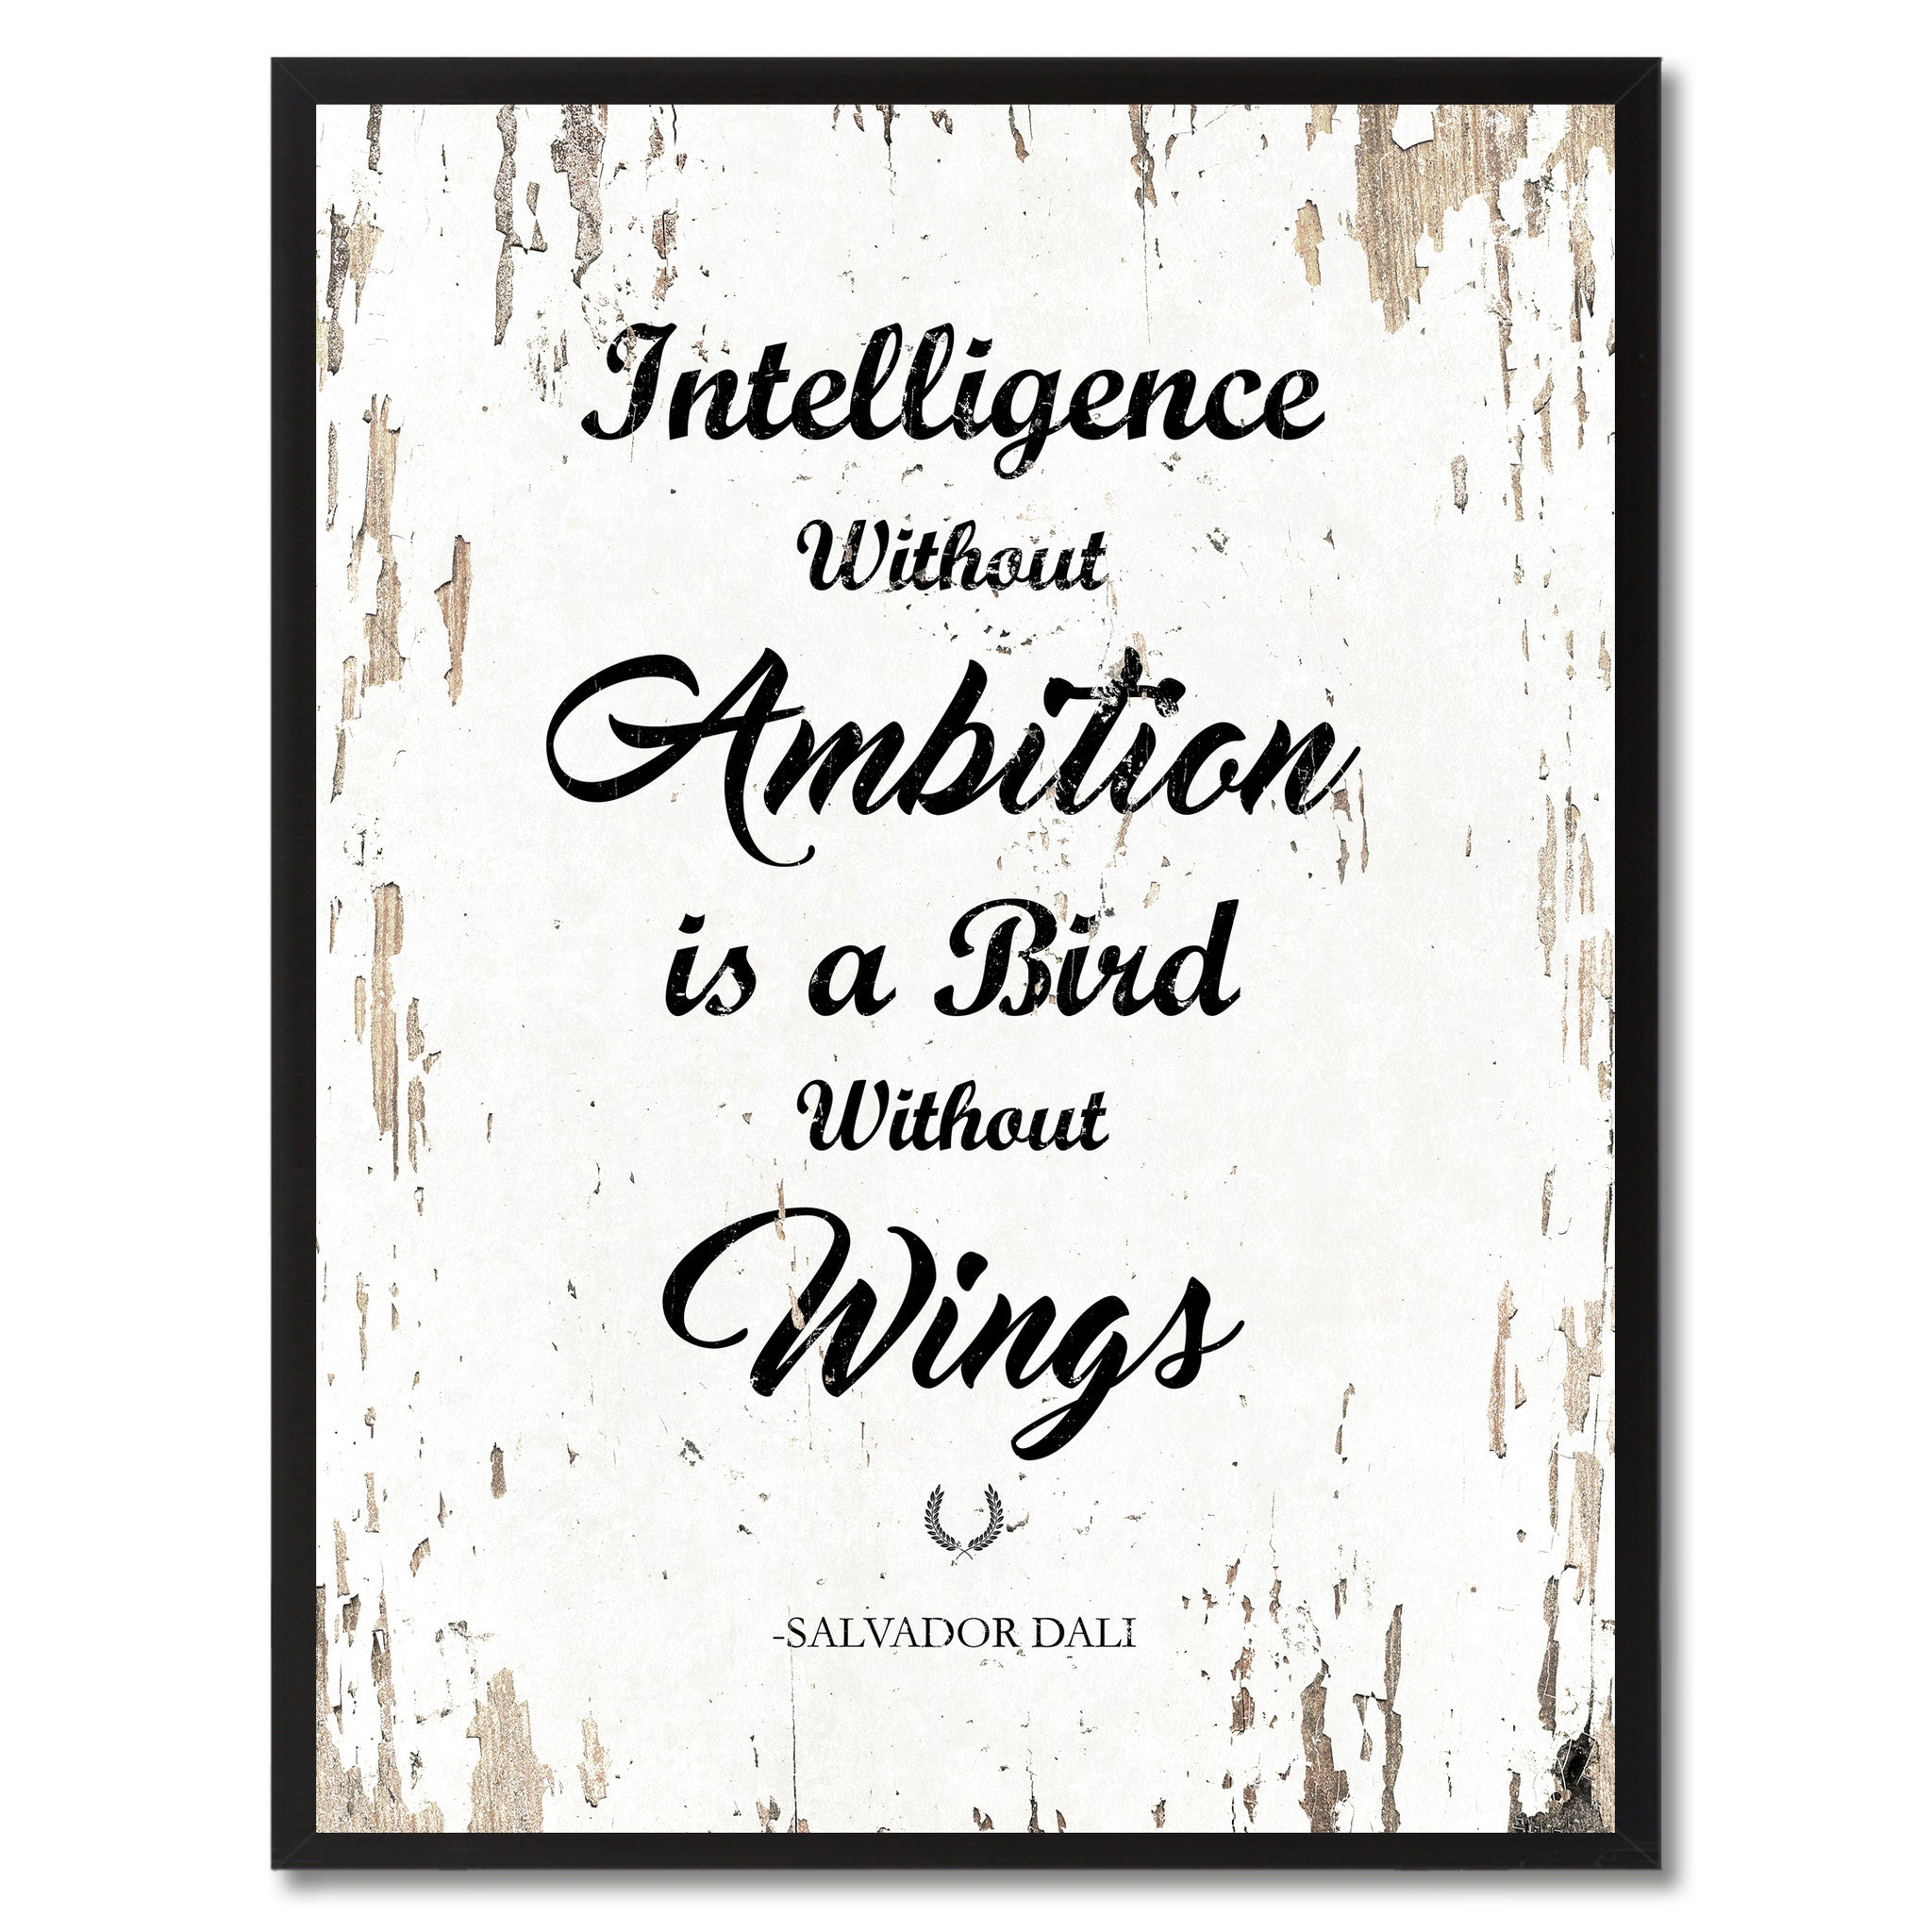 Intelligence without ambition is a bird without wings - Salvador Dali Inspirational Quote Saying Gift Ideas Home Decor Wall Art, White